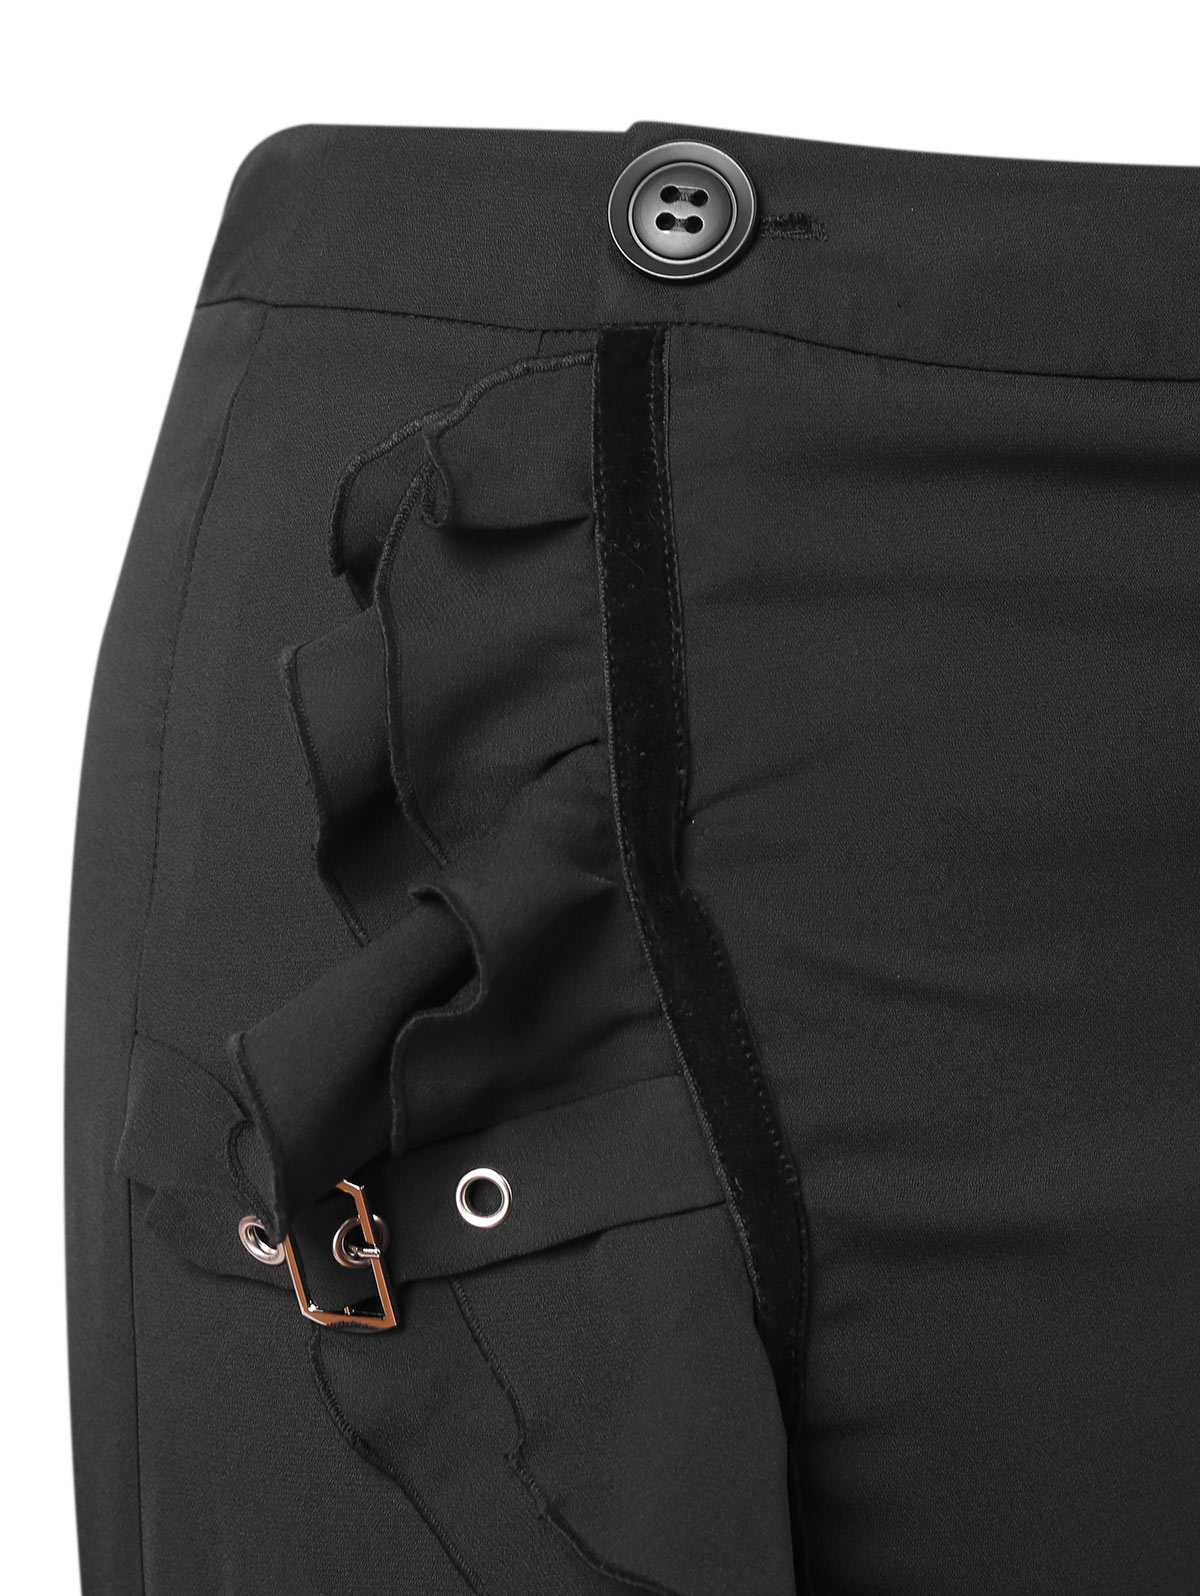 b18916baee8 Wipalo Plus Size High Low Flounce Skirt Women Fall Spring Black Buckle  Asymmetrical Skirts Casual Skirt Big Size Women Bottoms-in Skirts from  Women s ...